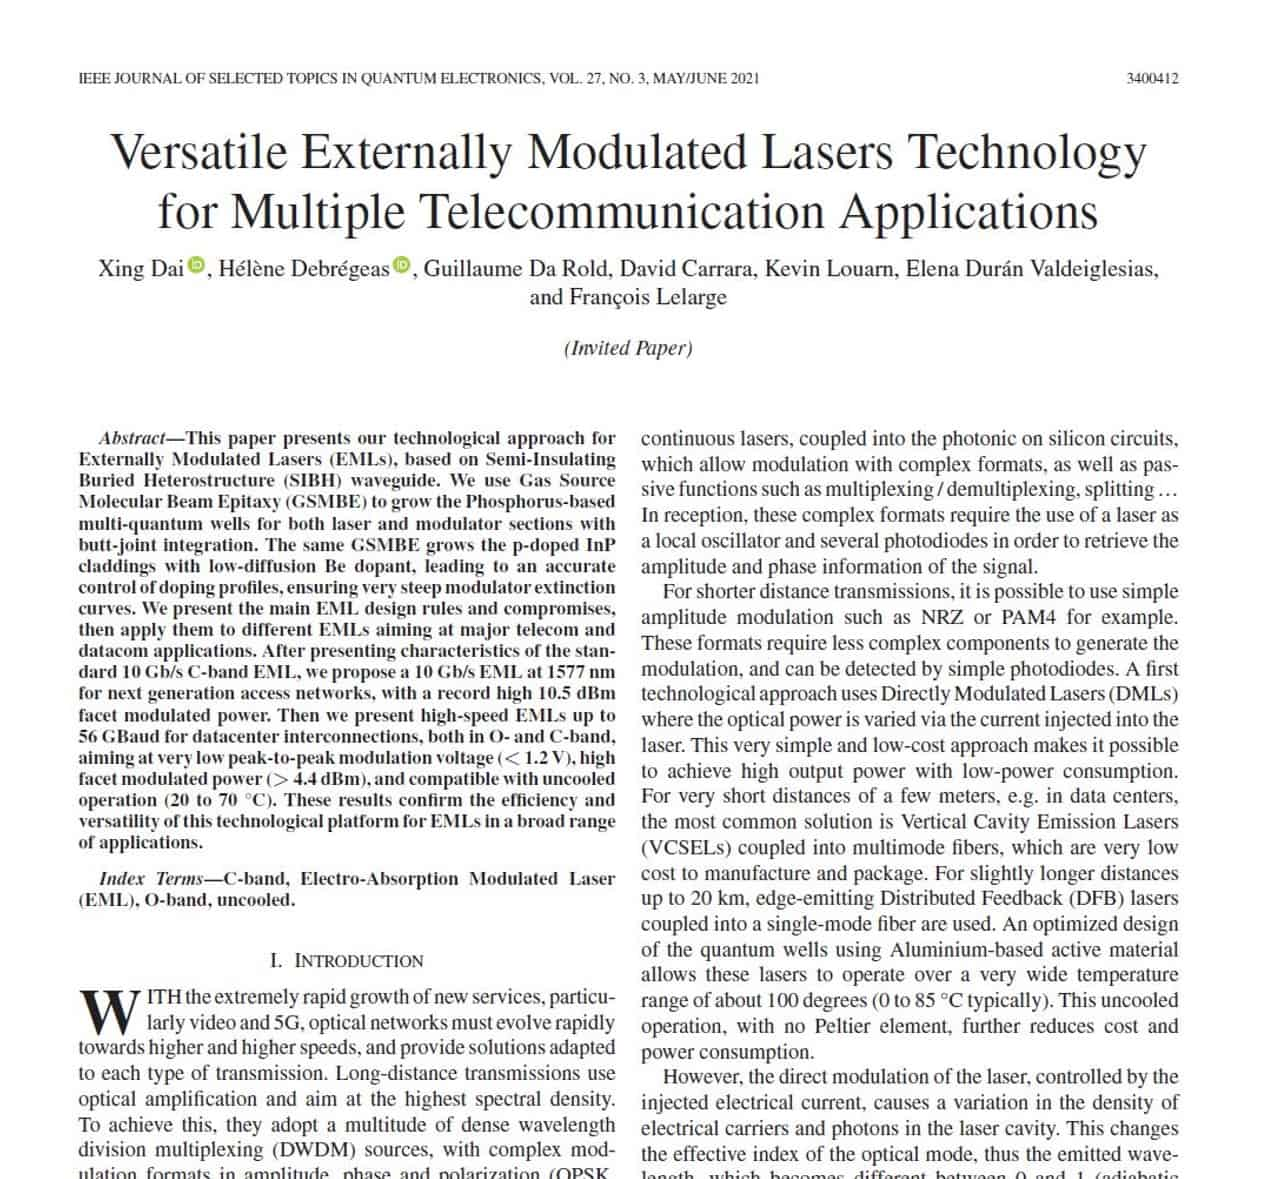 Versatile Externally Modulated Lasers Technology for Multiple Telecommunication Applications